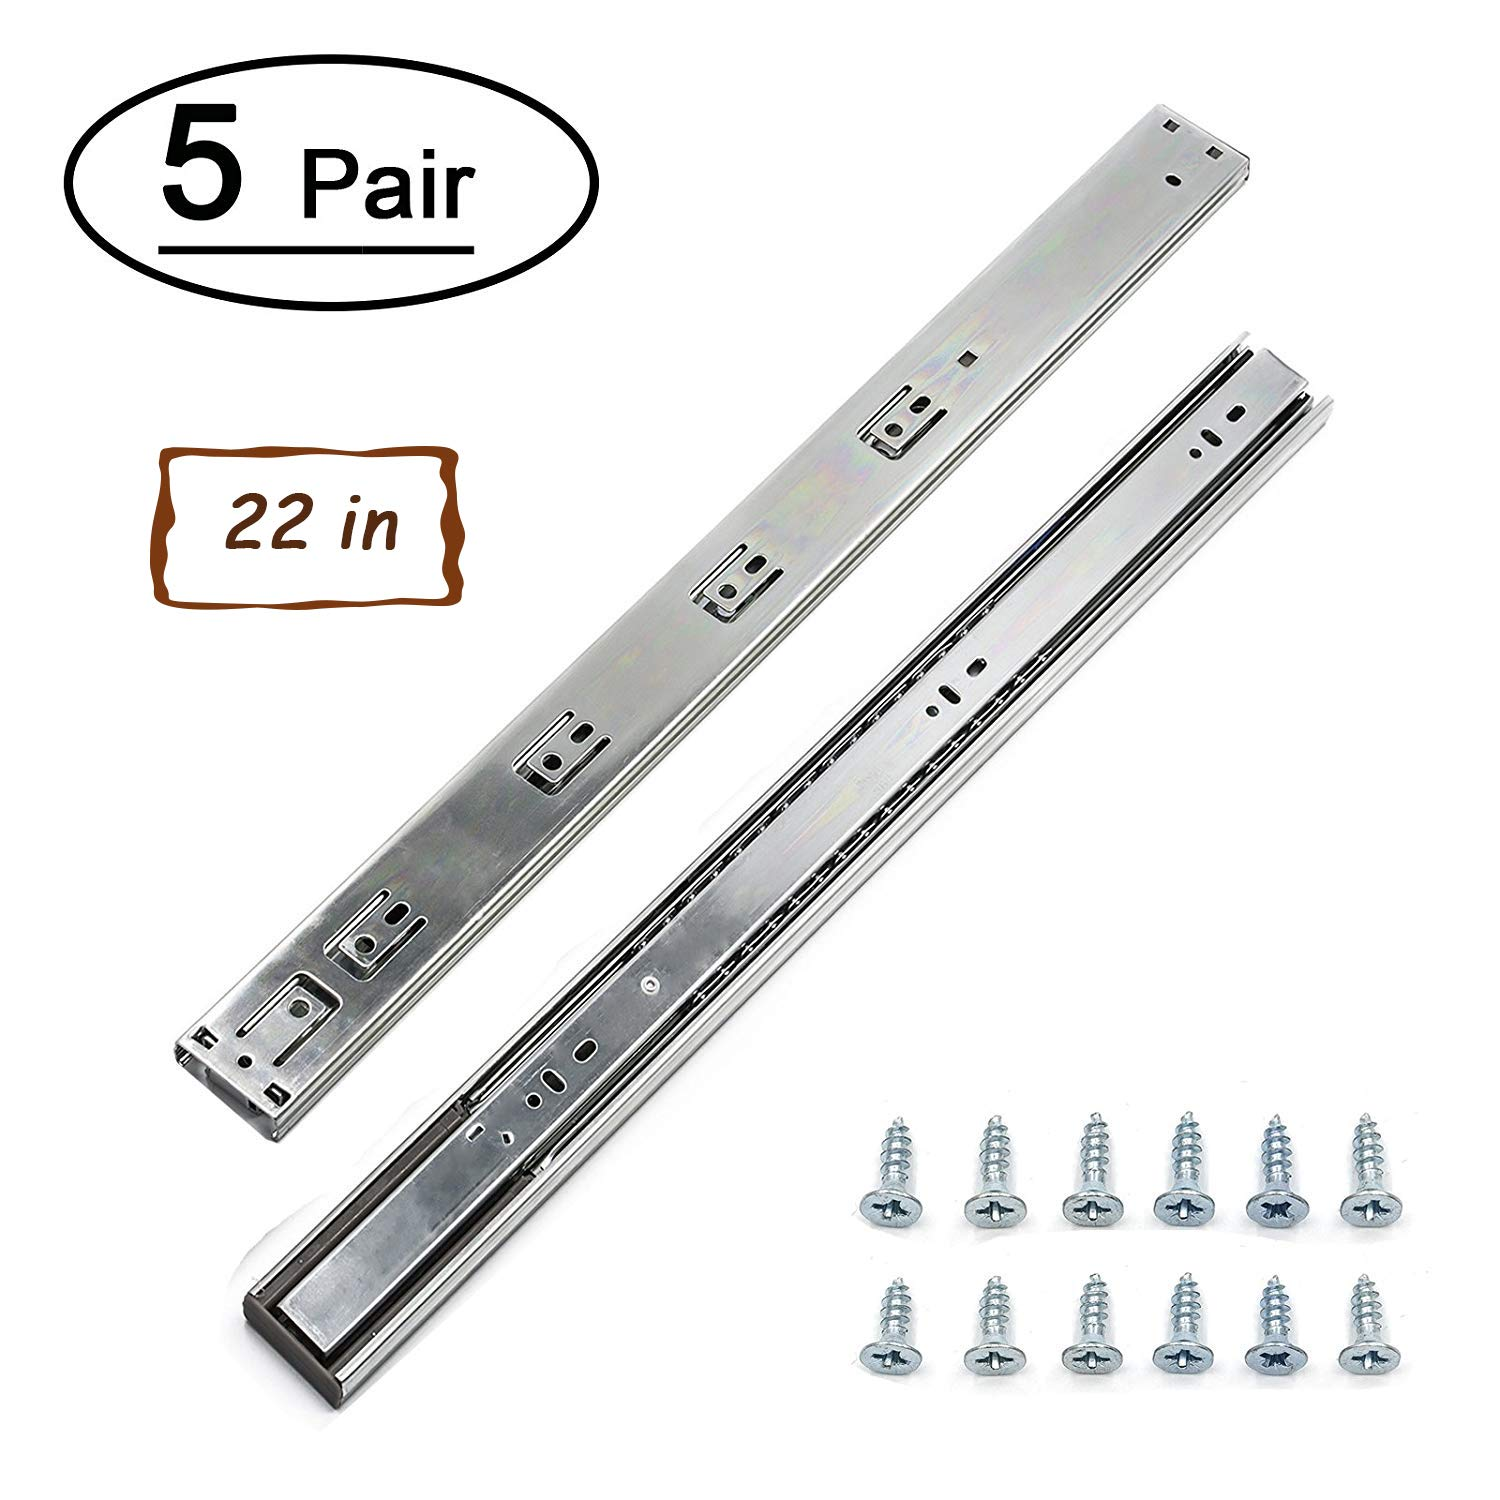 5 Pairs 22 inch Full Extension Drawer Slides Soft Close Ball Bearing Drawer Slides - LONTAN 4502S3-22 Rails for Drawers Heavy Duty 100 LB Capacity Drawer Runners